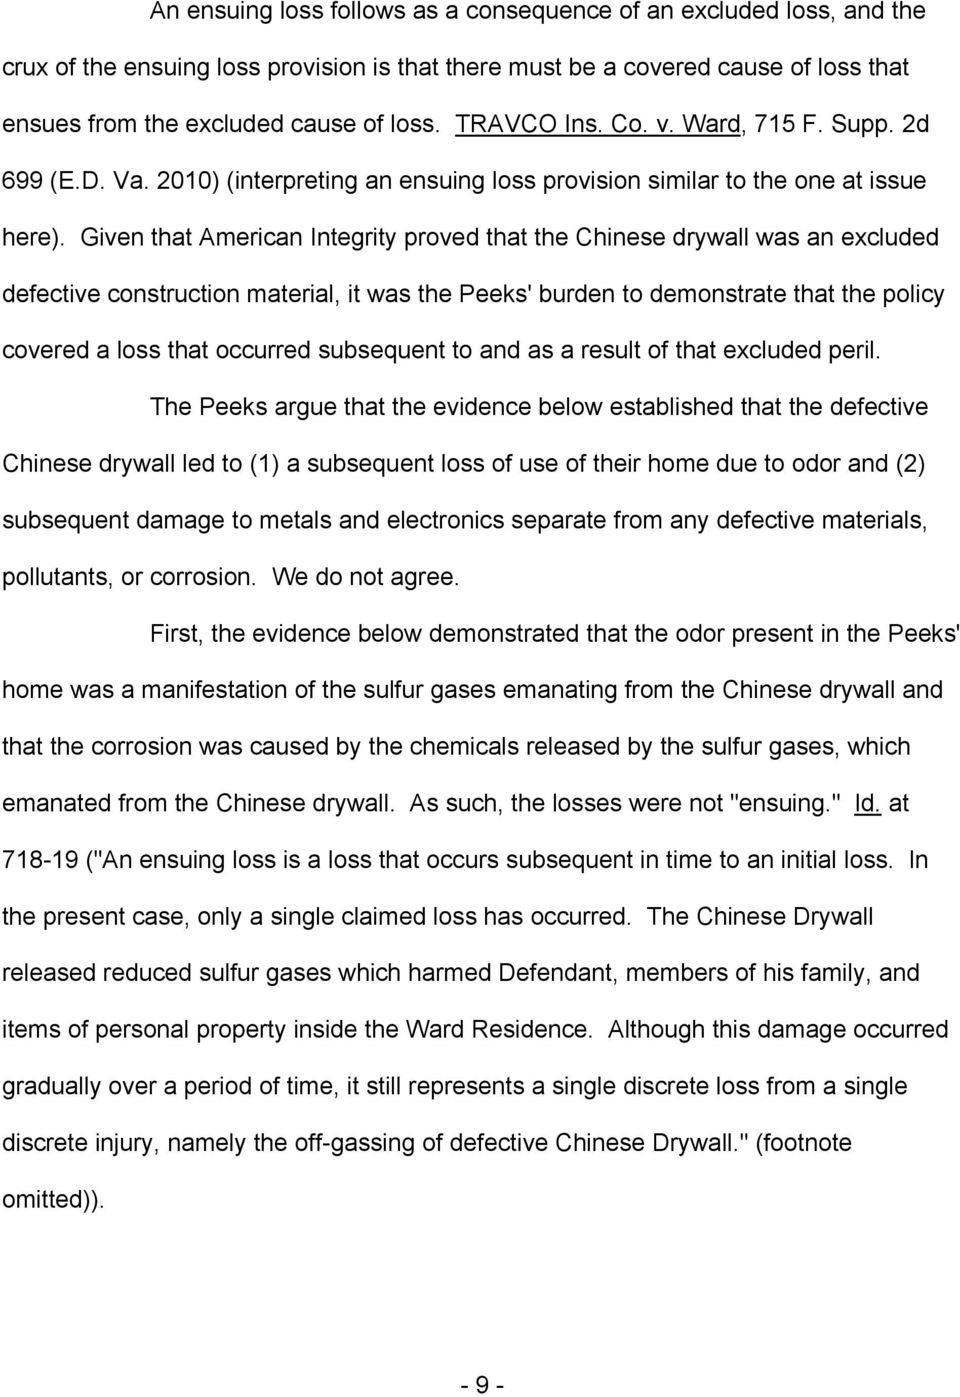 Given that American Integrity proved that the Chinese drywall was an excluded defective construction material, it was the Peeks' burden to demonstrate that the policy covered a loss that occurred